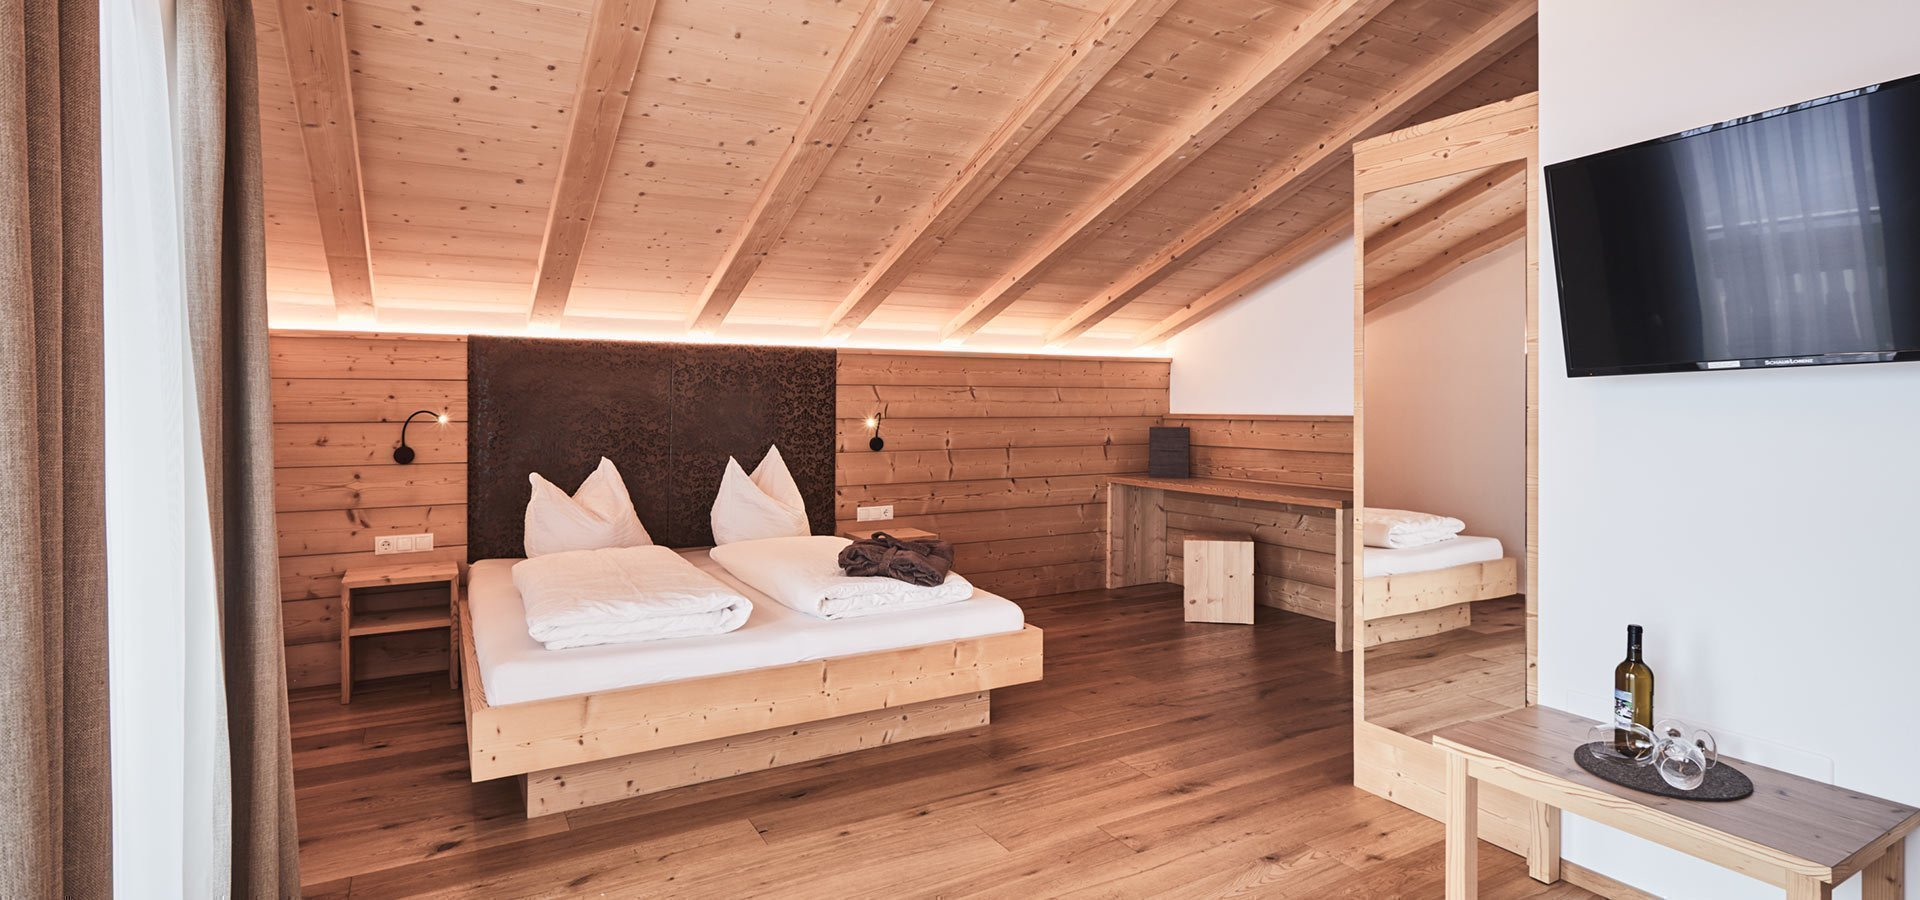 Accomodation Rooms in Maranza Val Isarco South Tyrol